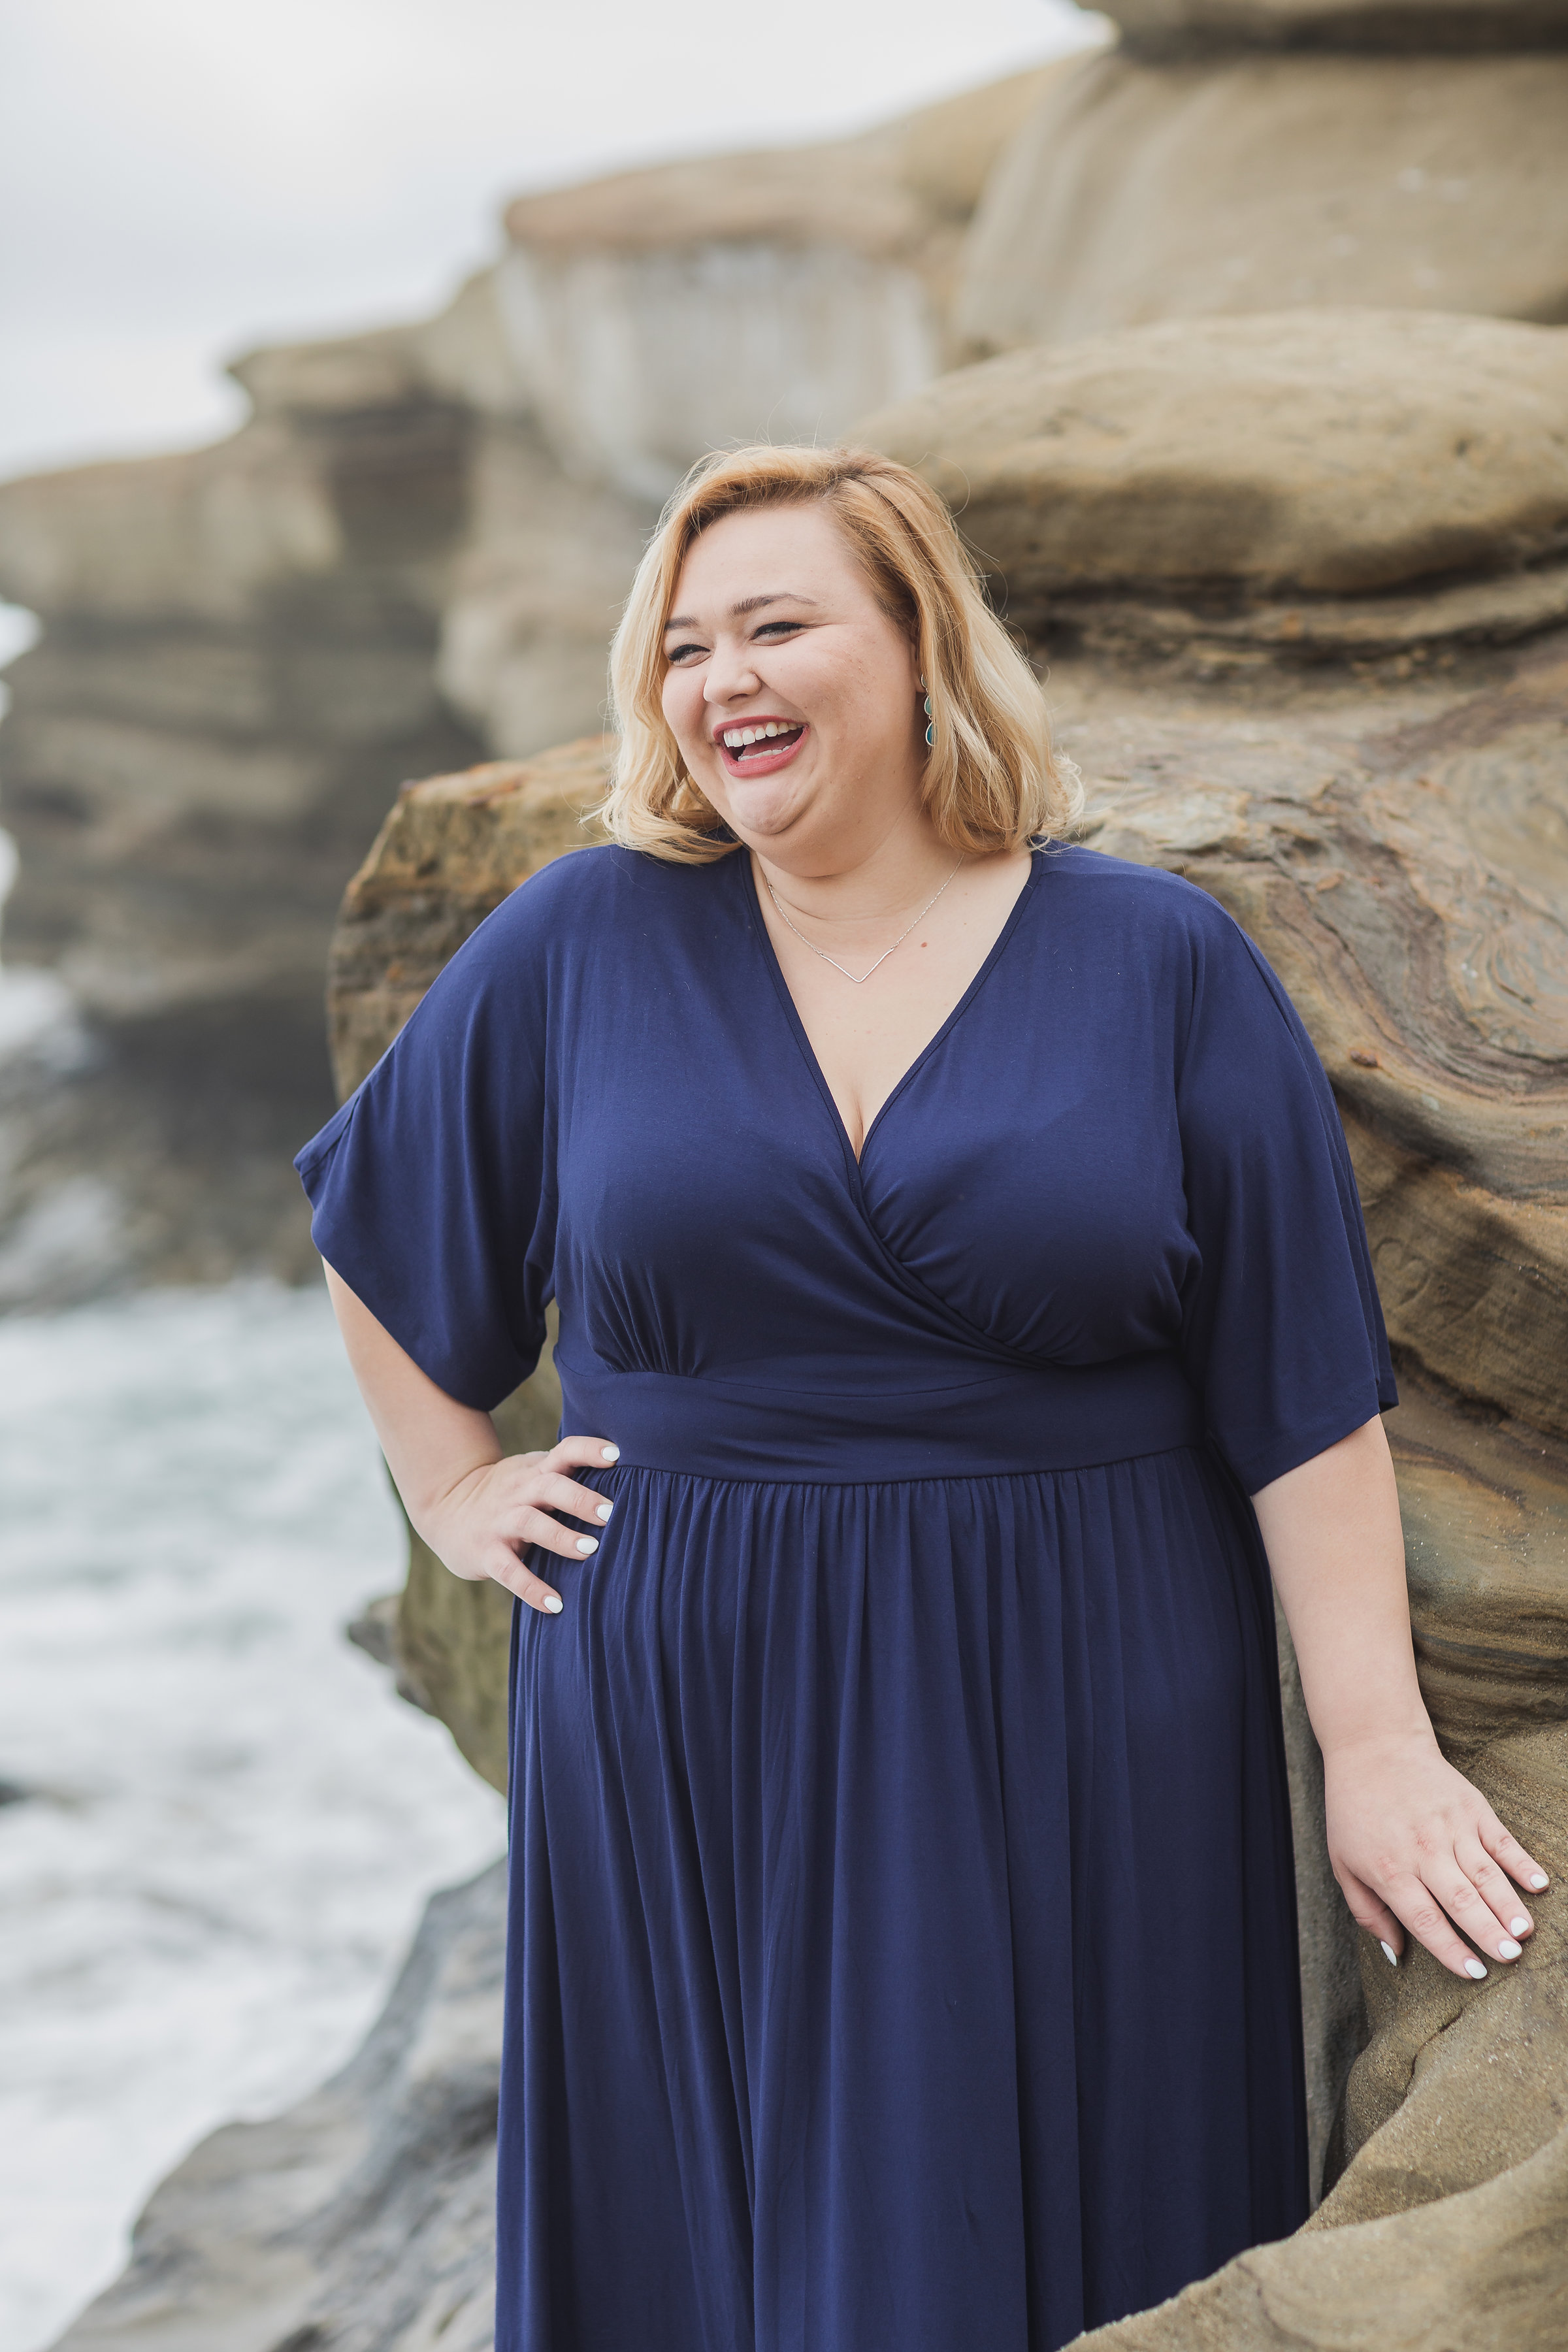 Laughing gal in blue dress and the beach.jpg